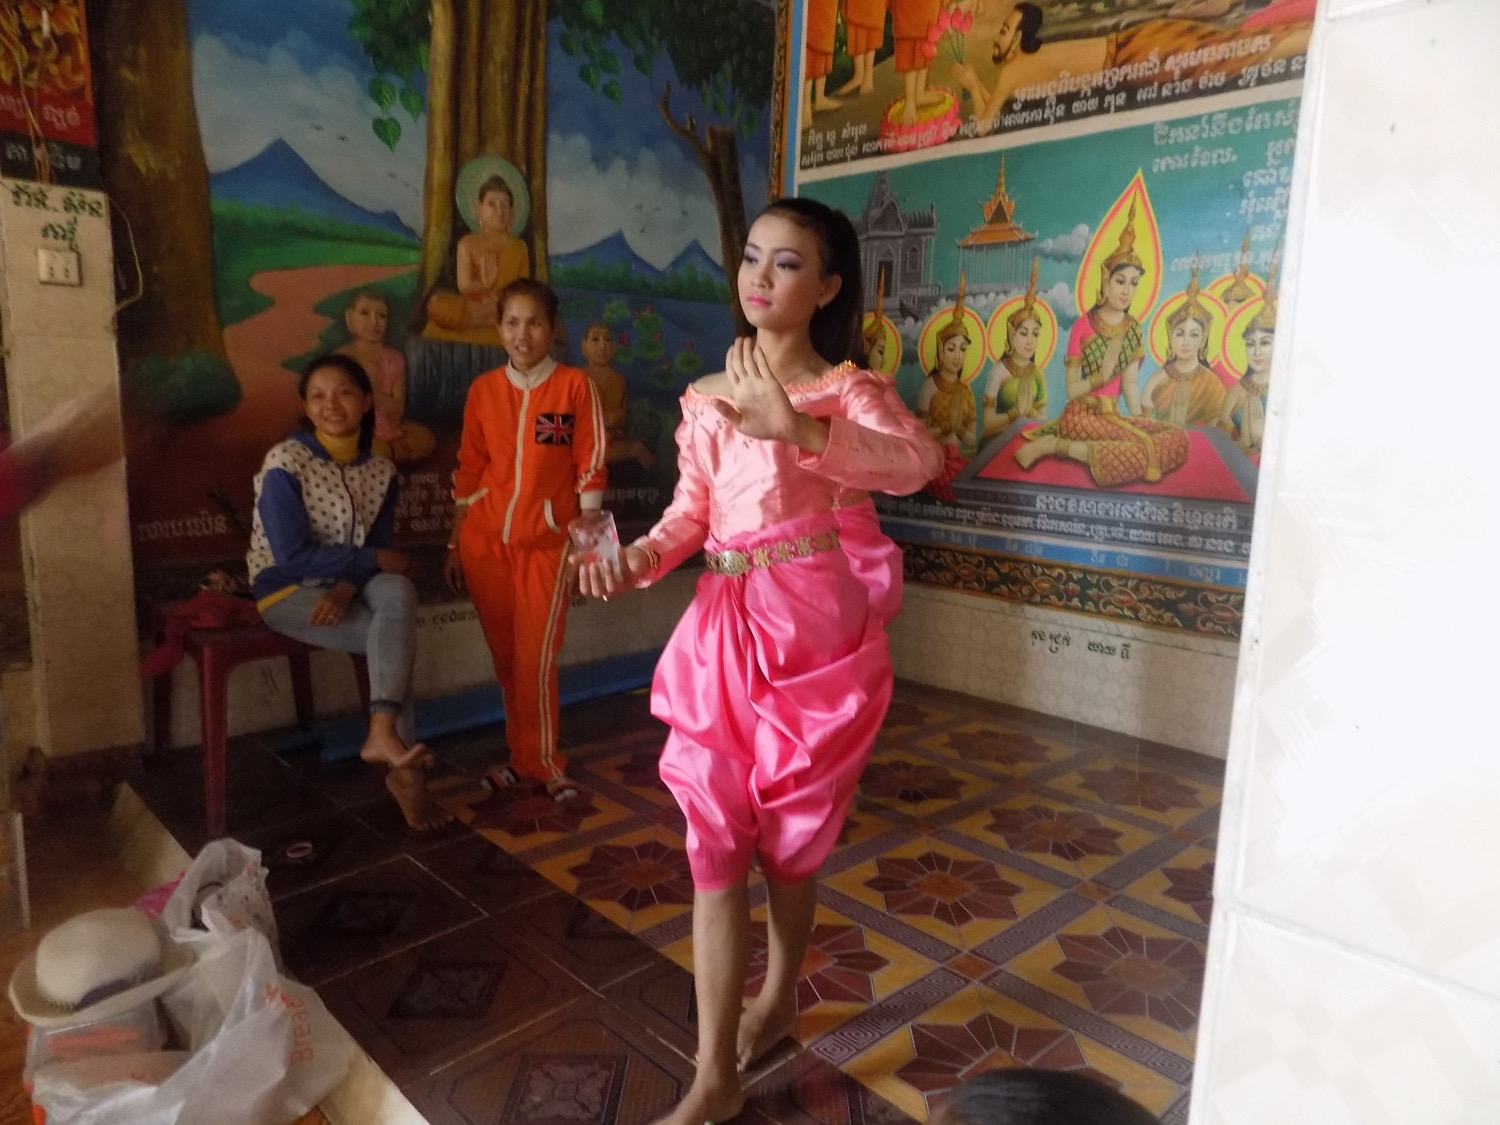 This is one of Narak's friends performing a traditional Khmer dance at the pagoda.